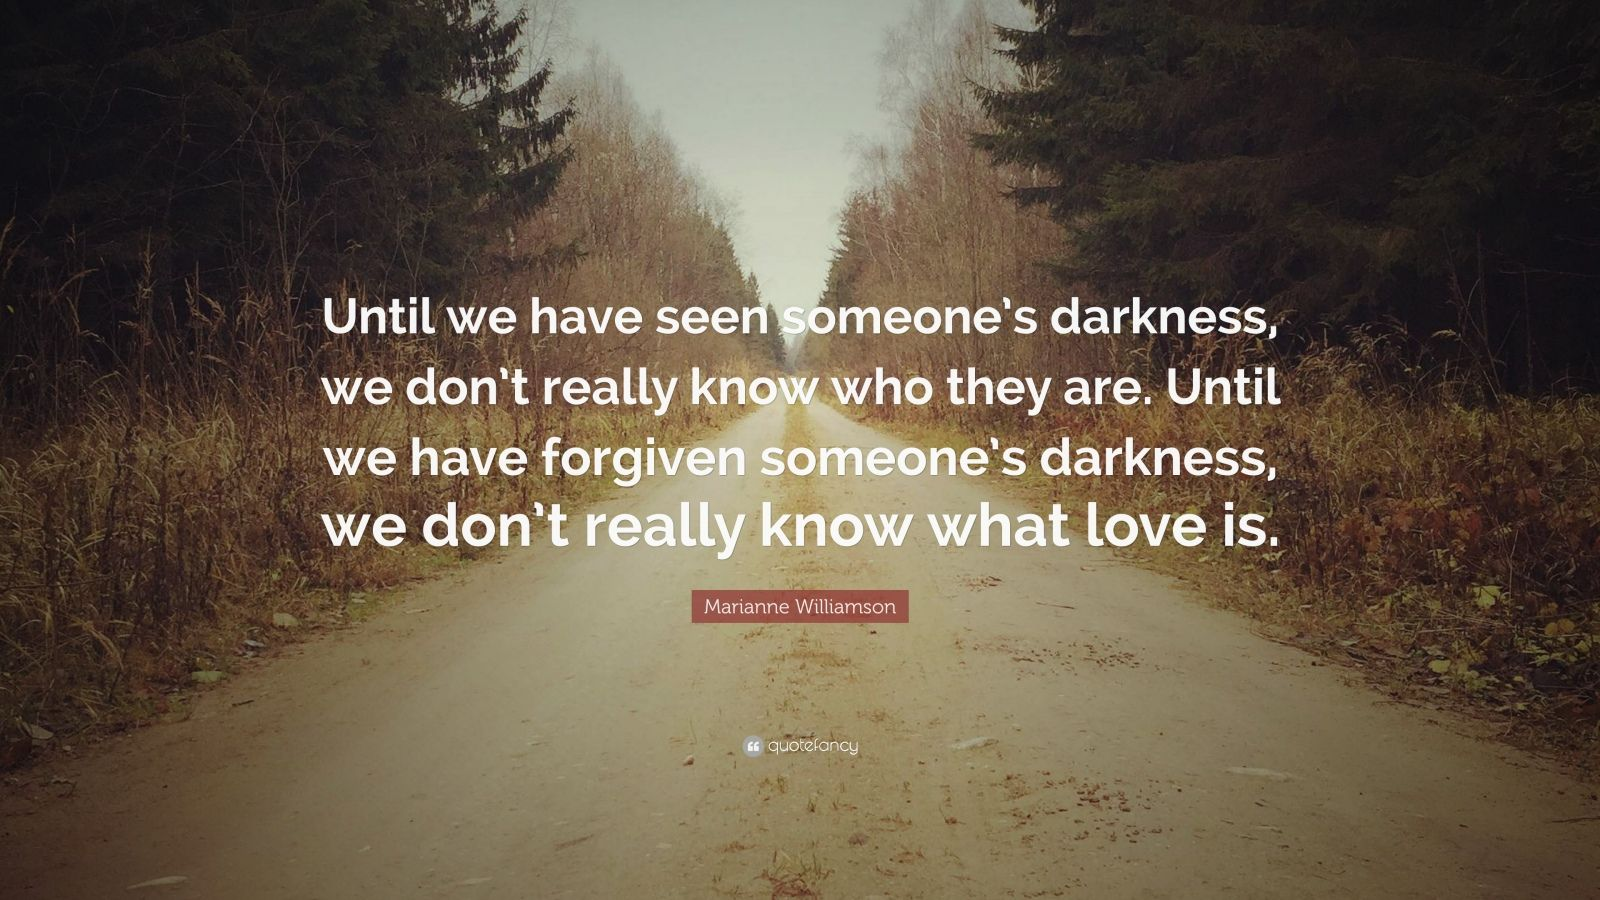 "Marianne Williamson Quote: ""Until we have seen someone's darkness, we don't really know who they are. Until we have forgiven someone's darkness, we don't really know what love is."""